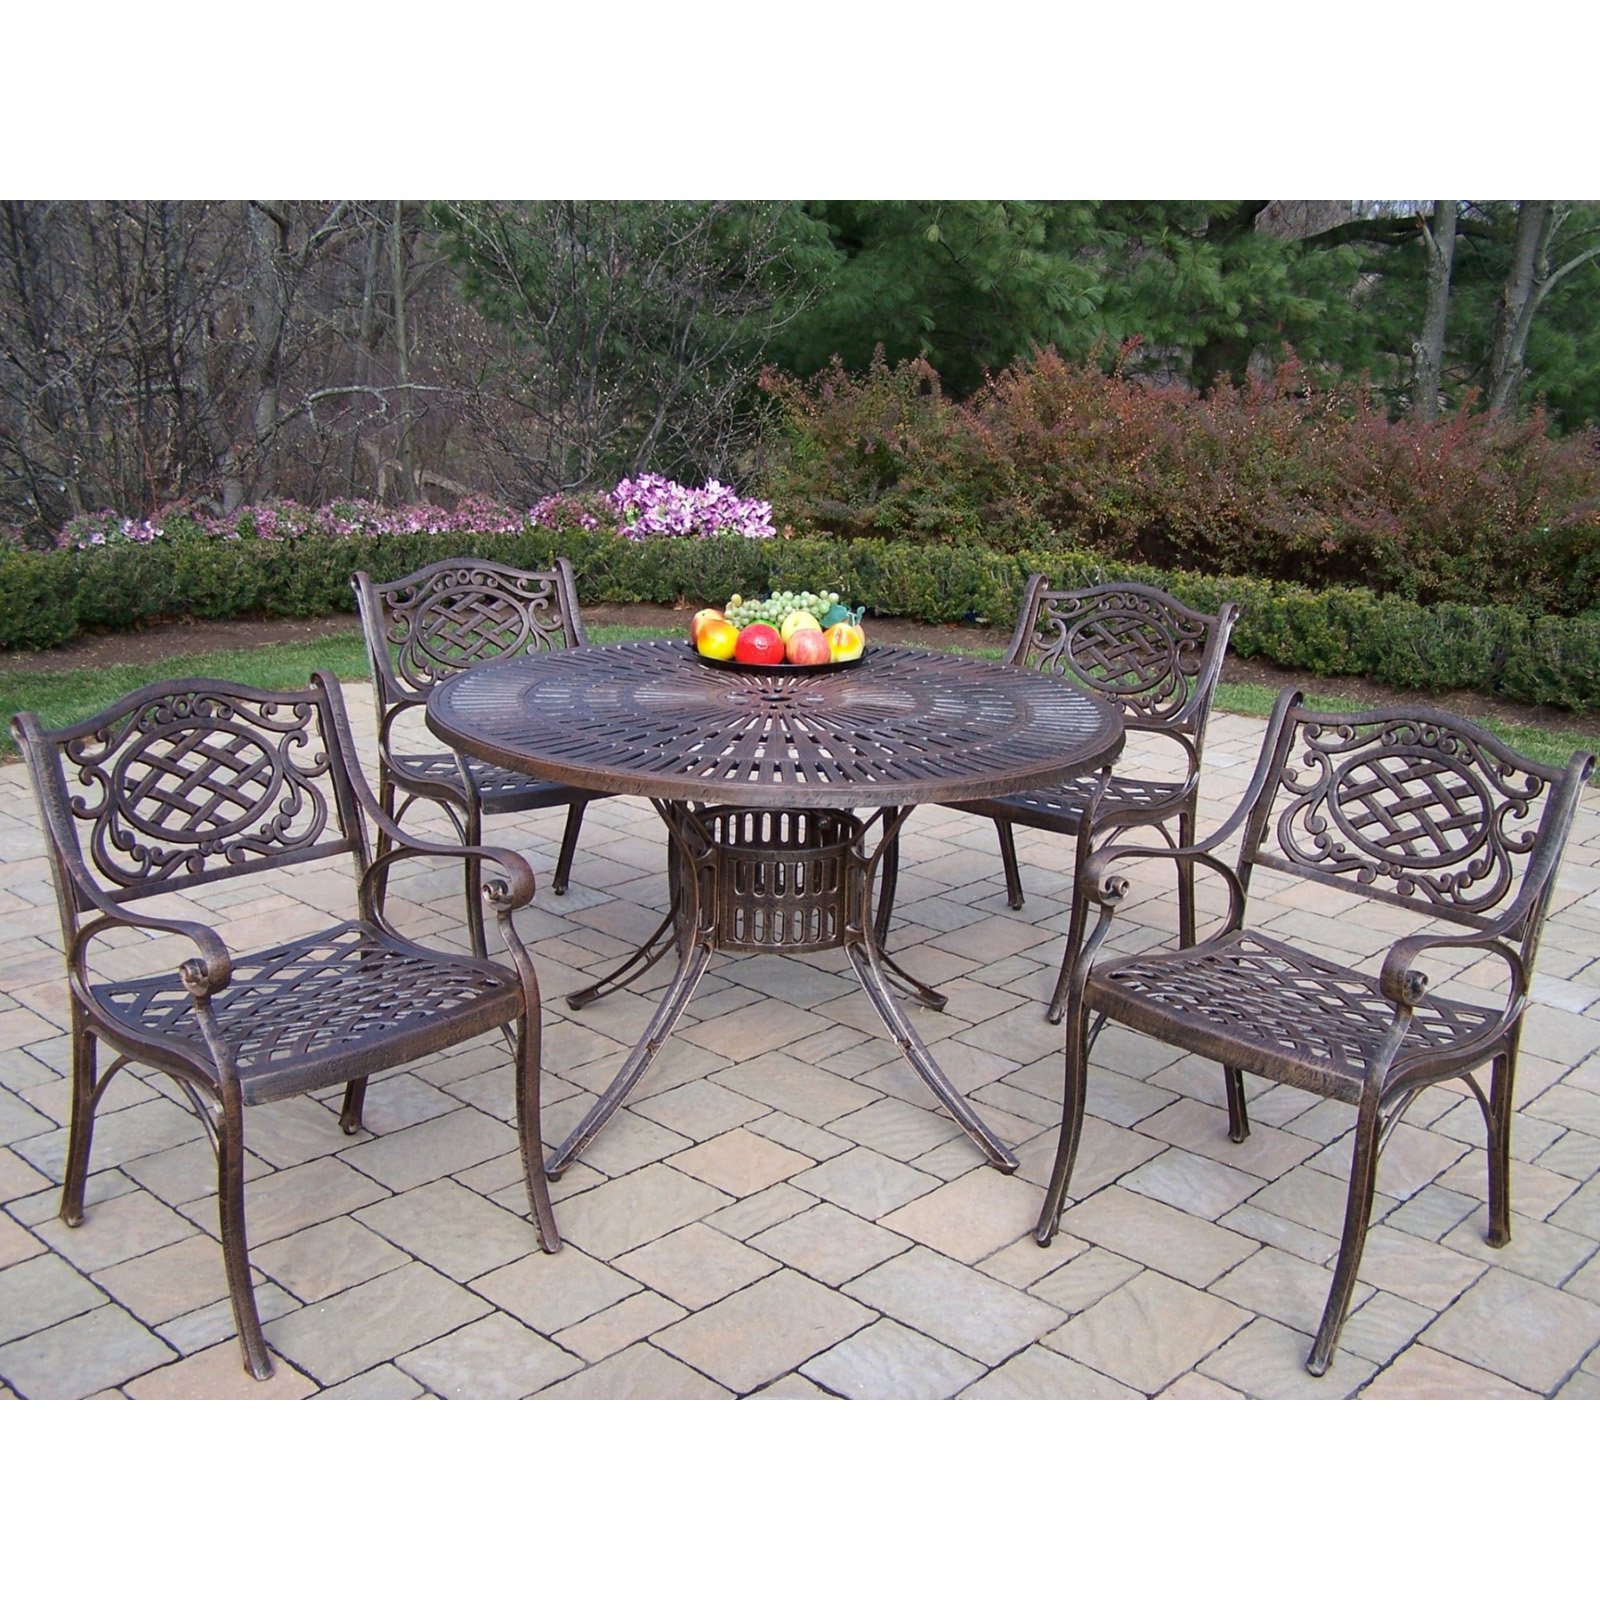 Oakland Living Sunray 48 in. Mississippi Patio Dining Set - Seats 4